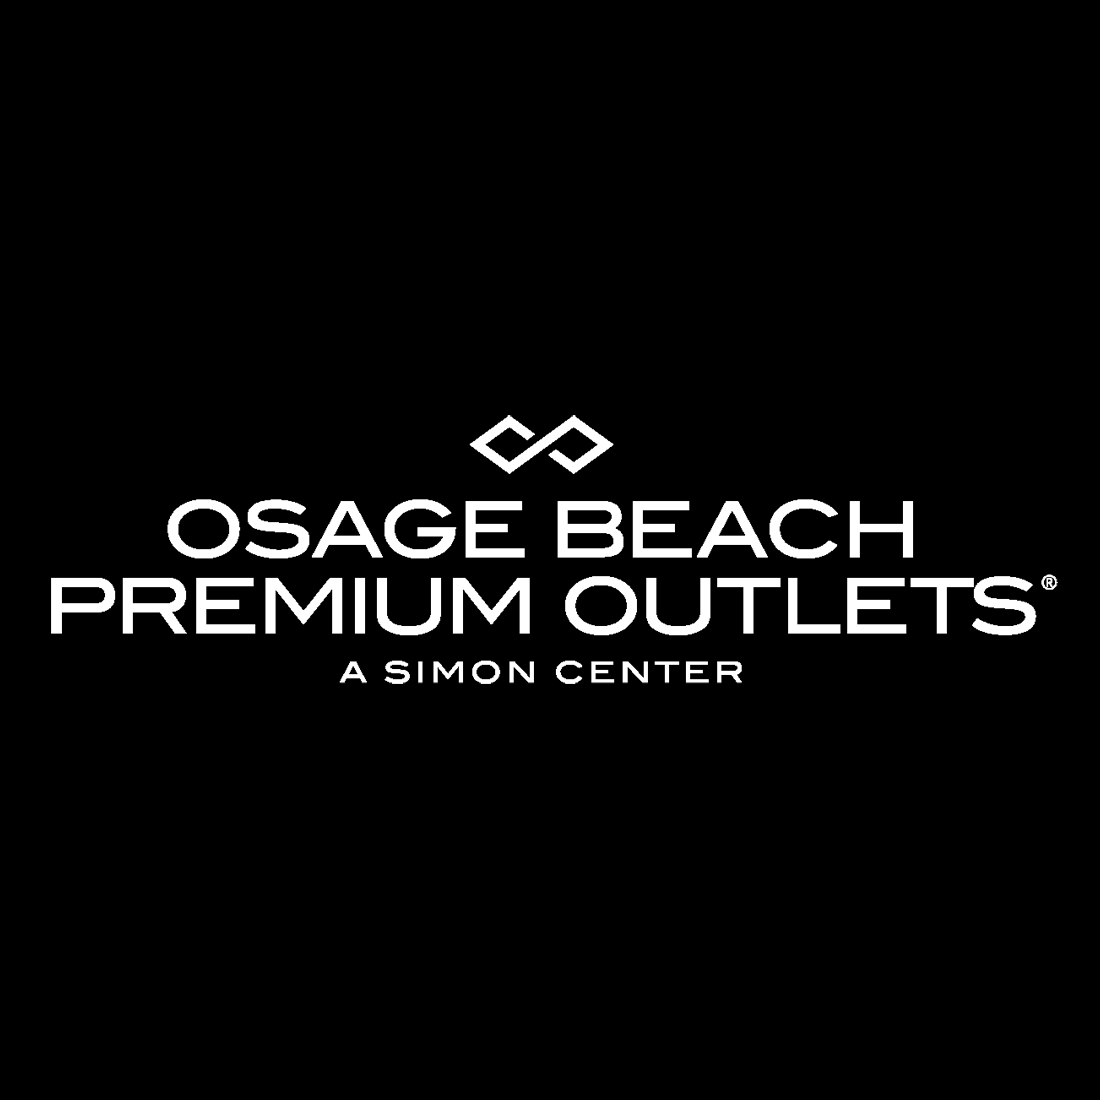 Osage Beach Premium Outlets - Osage Beach, MO - Factory Outlet Stores